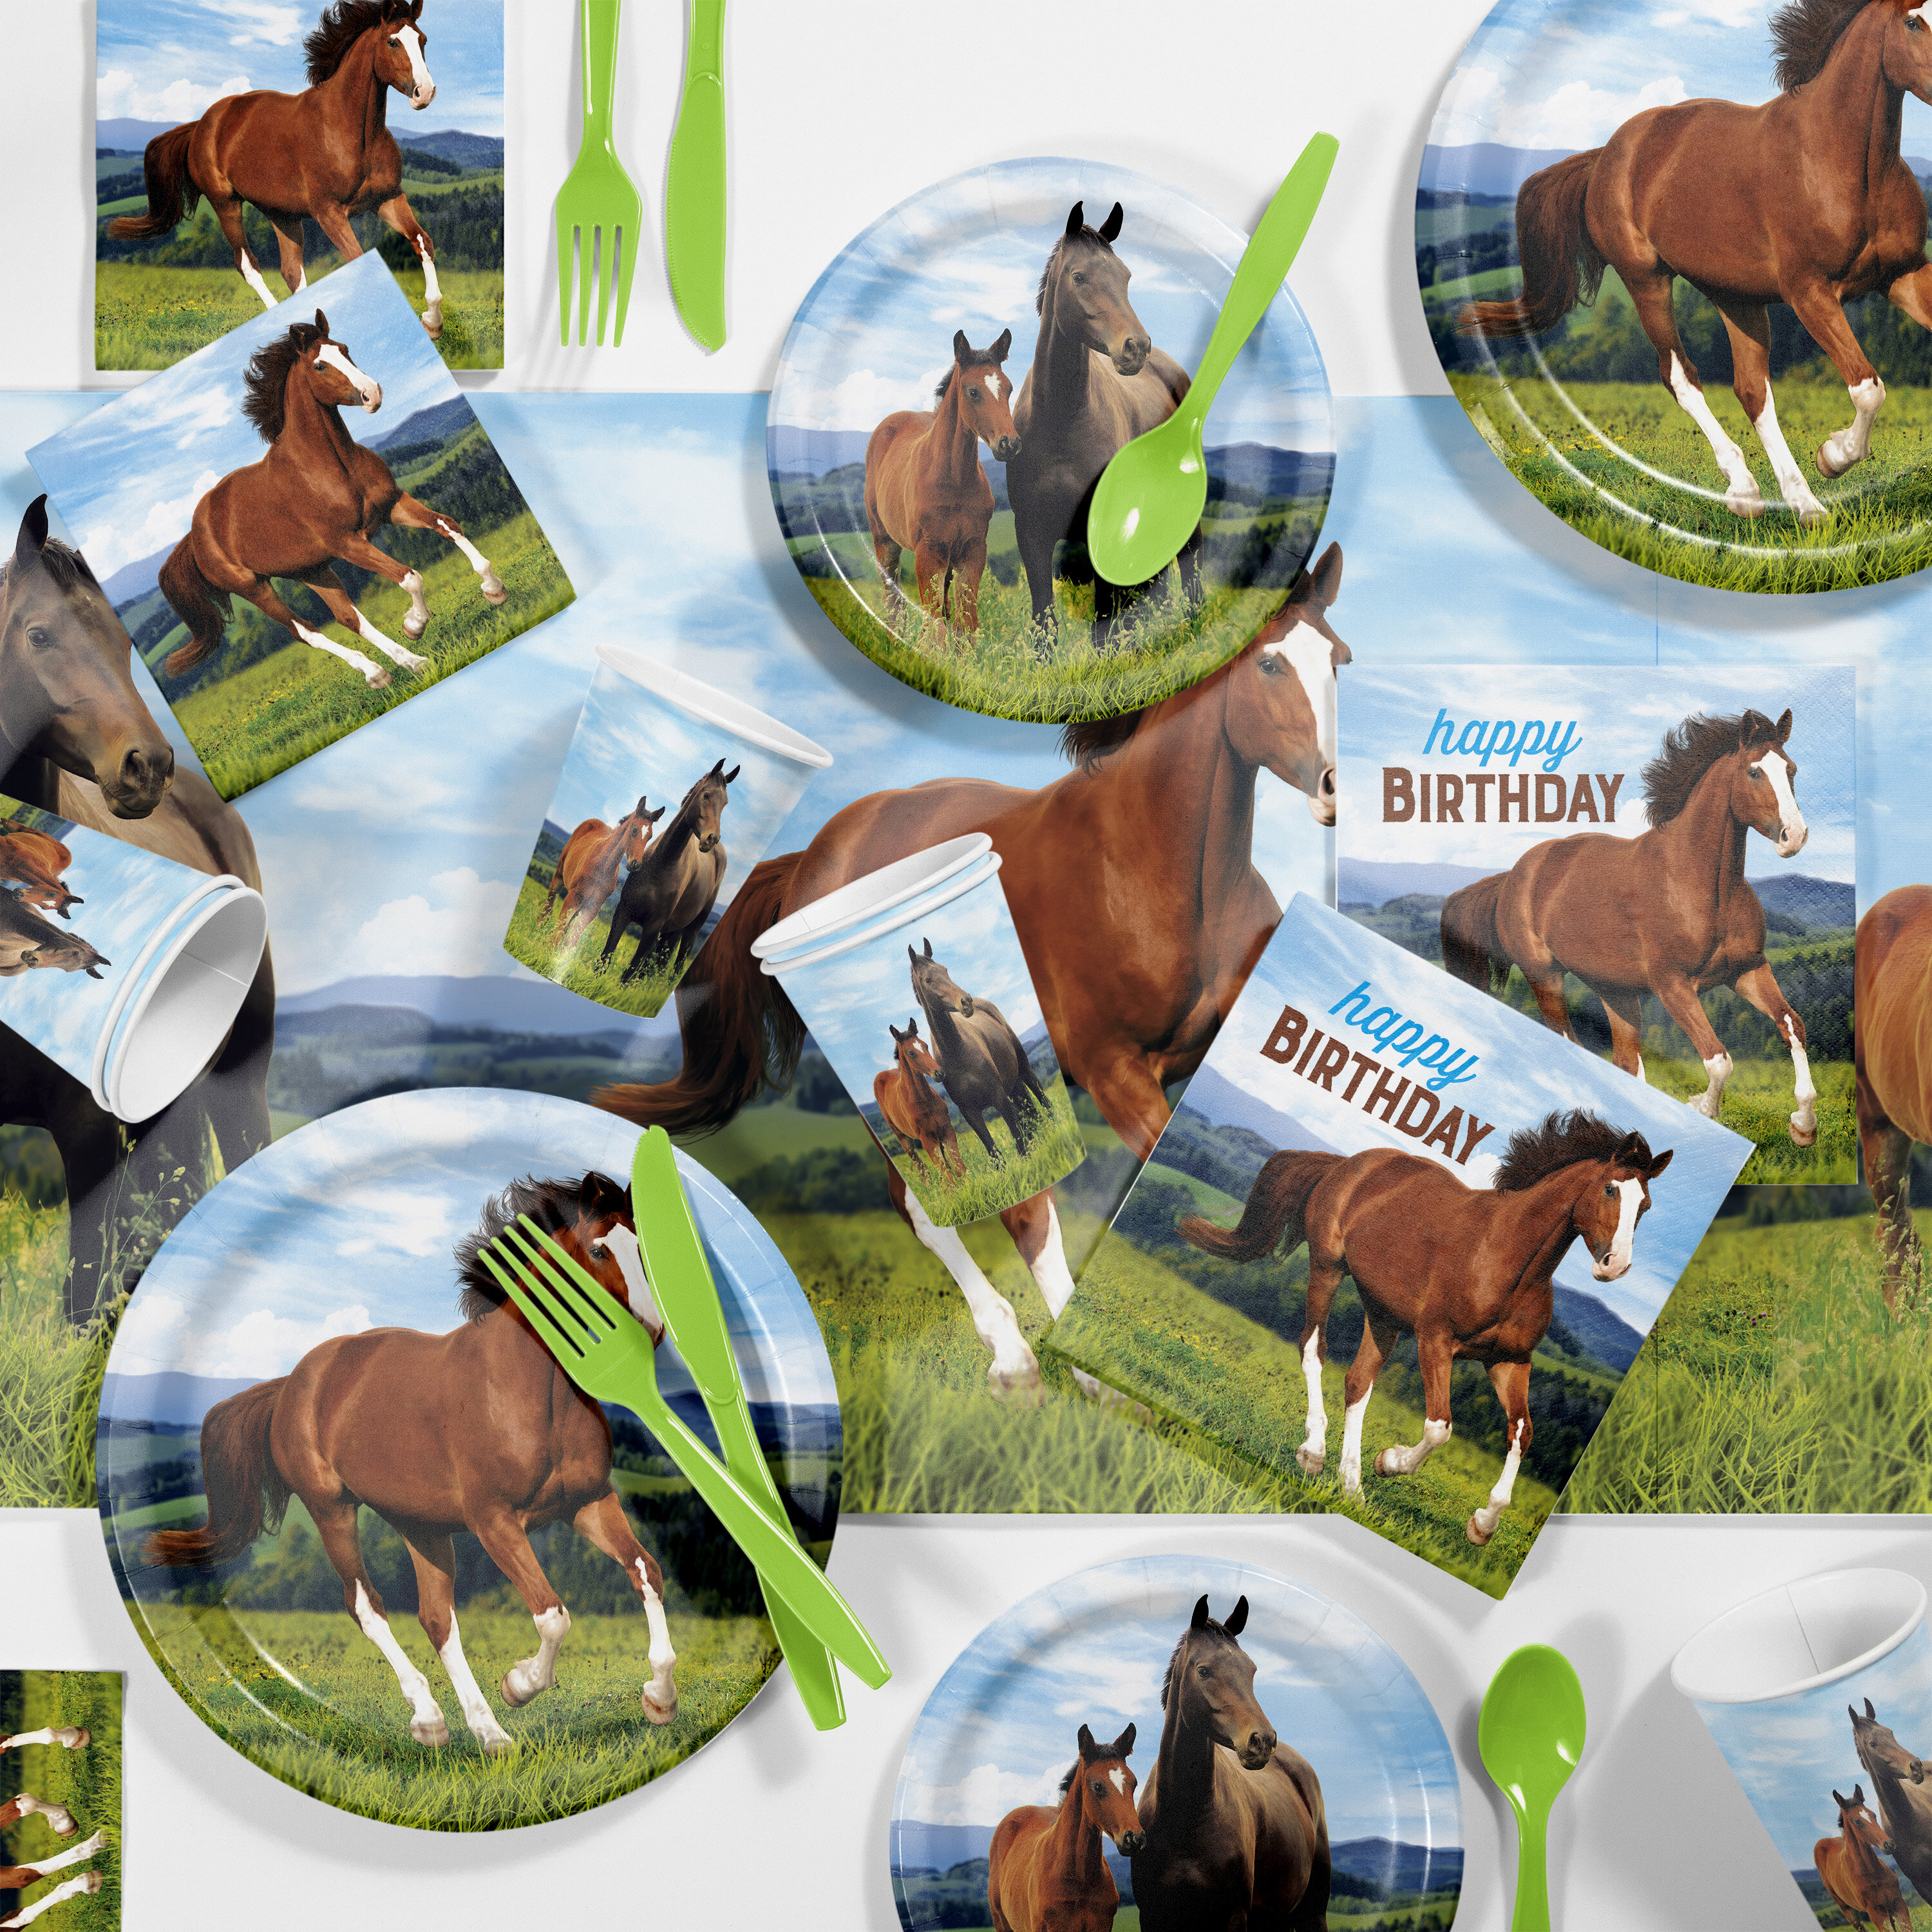 Creative Converting Wild Horse Birthday Party Supplies Kit Guests ...